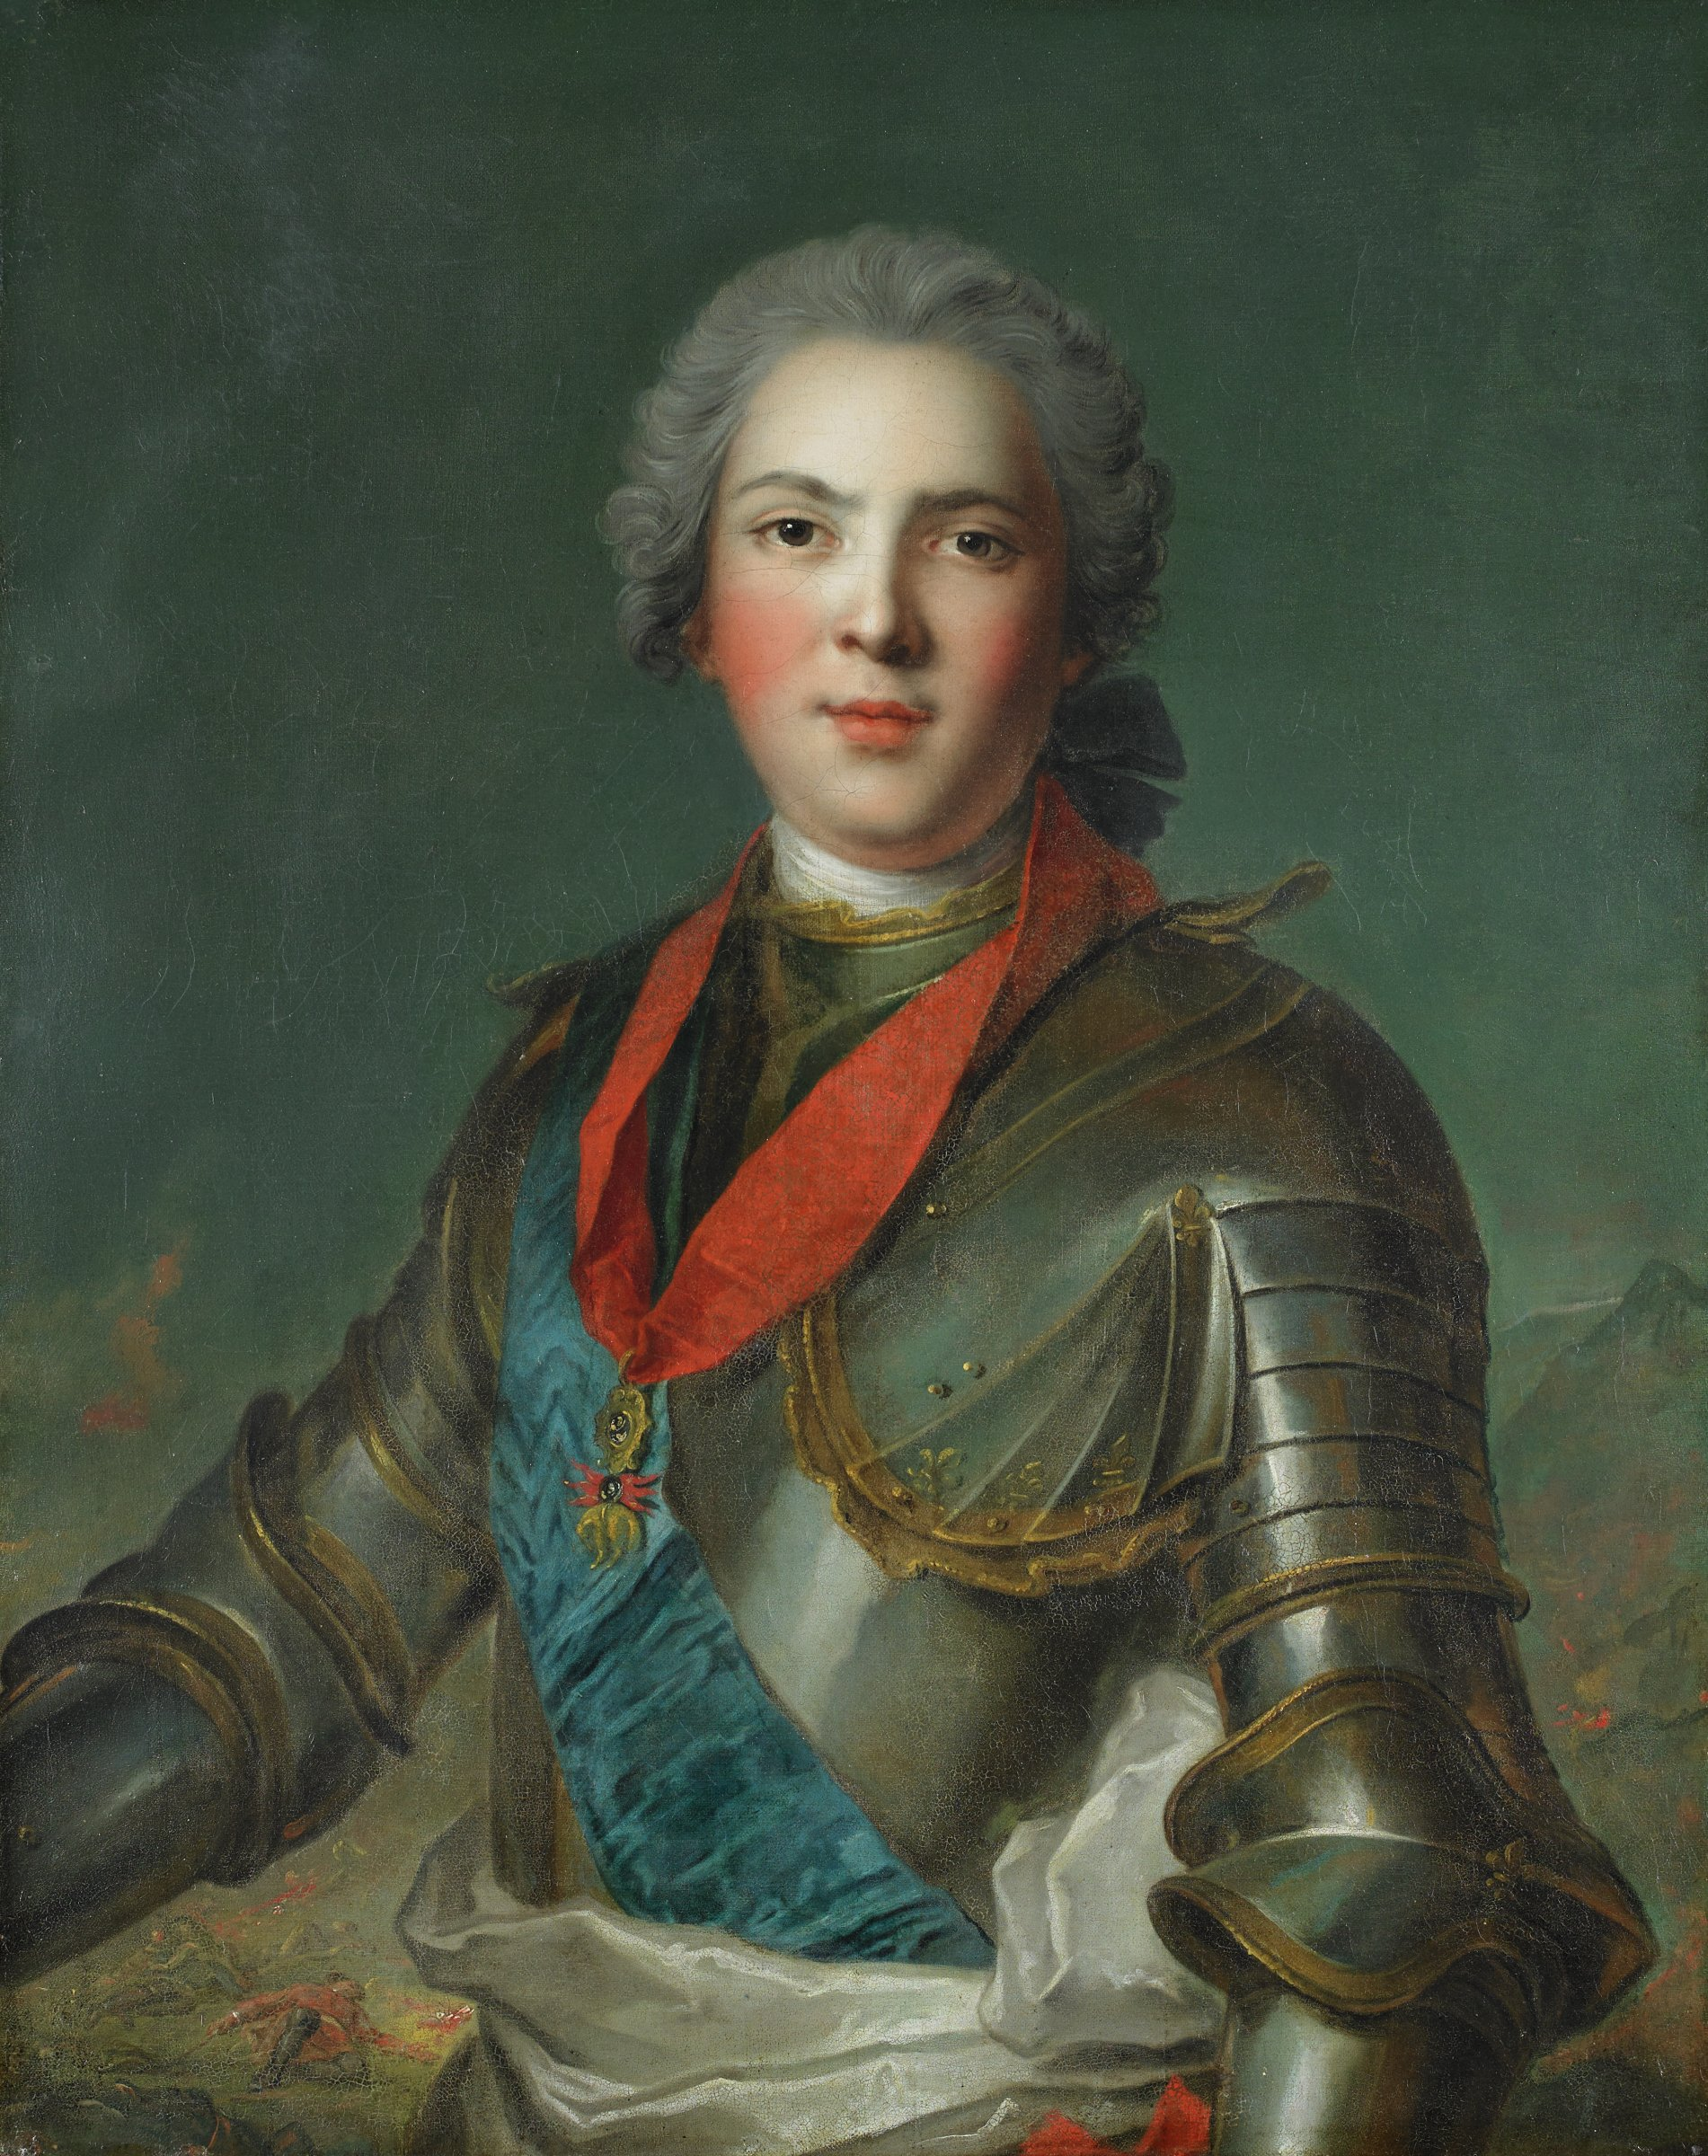 Louis, dauphin of France, son of Louis XV, After Jean-Marc Nattier, oil on canvas